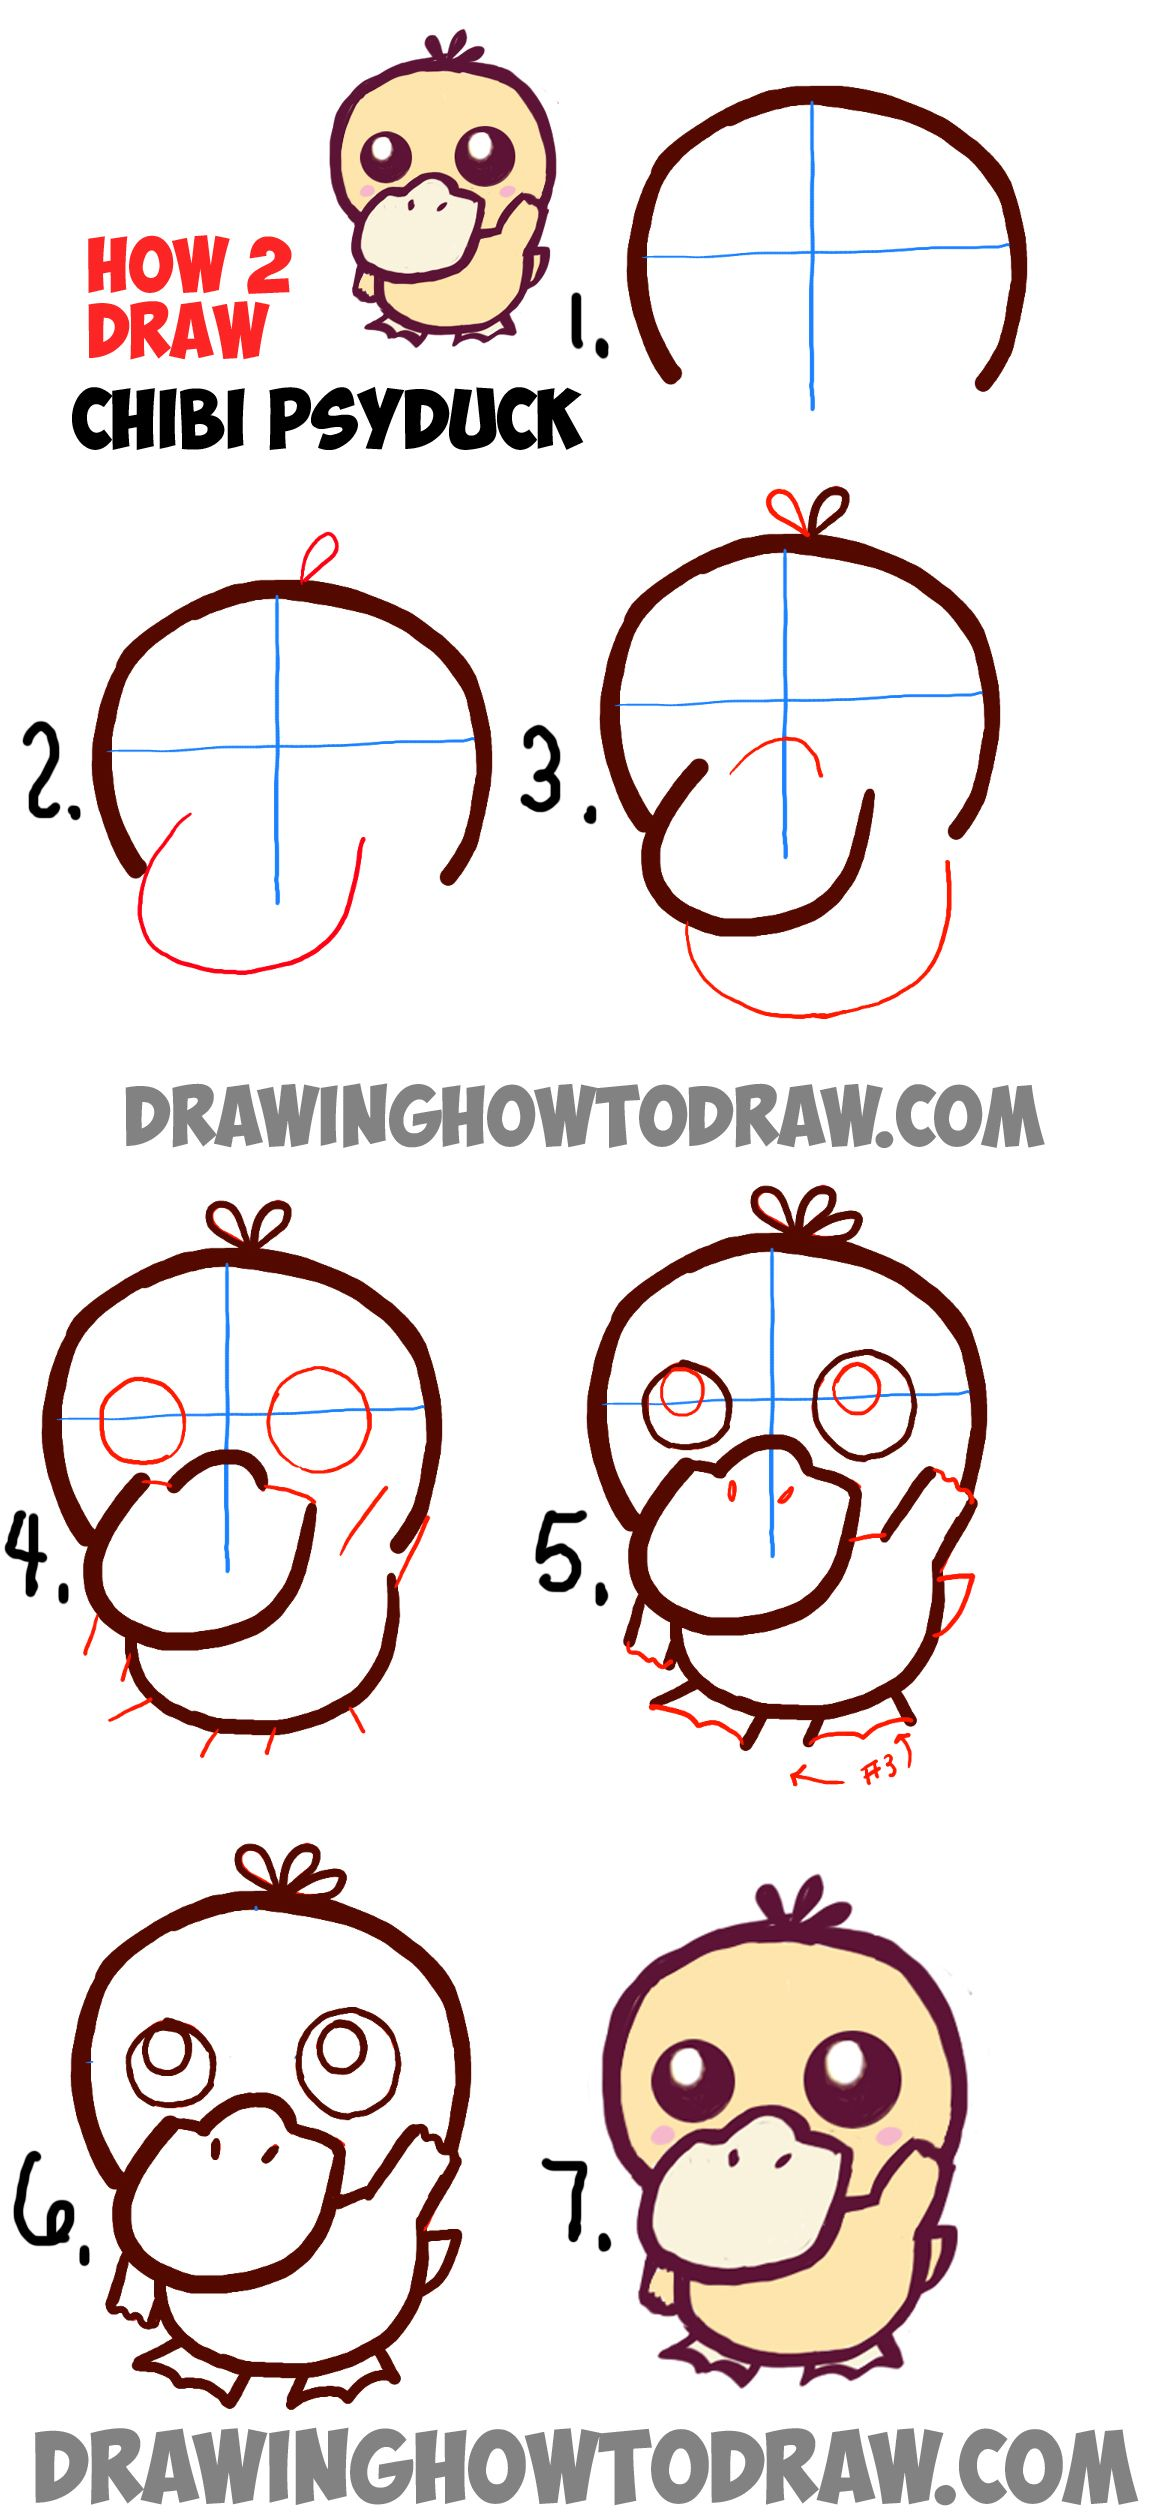 How To Draw A Cute Baby Chibi Psyduck From Pokemon In Easy